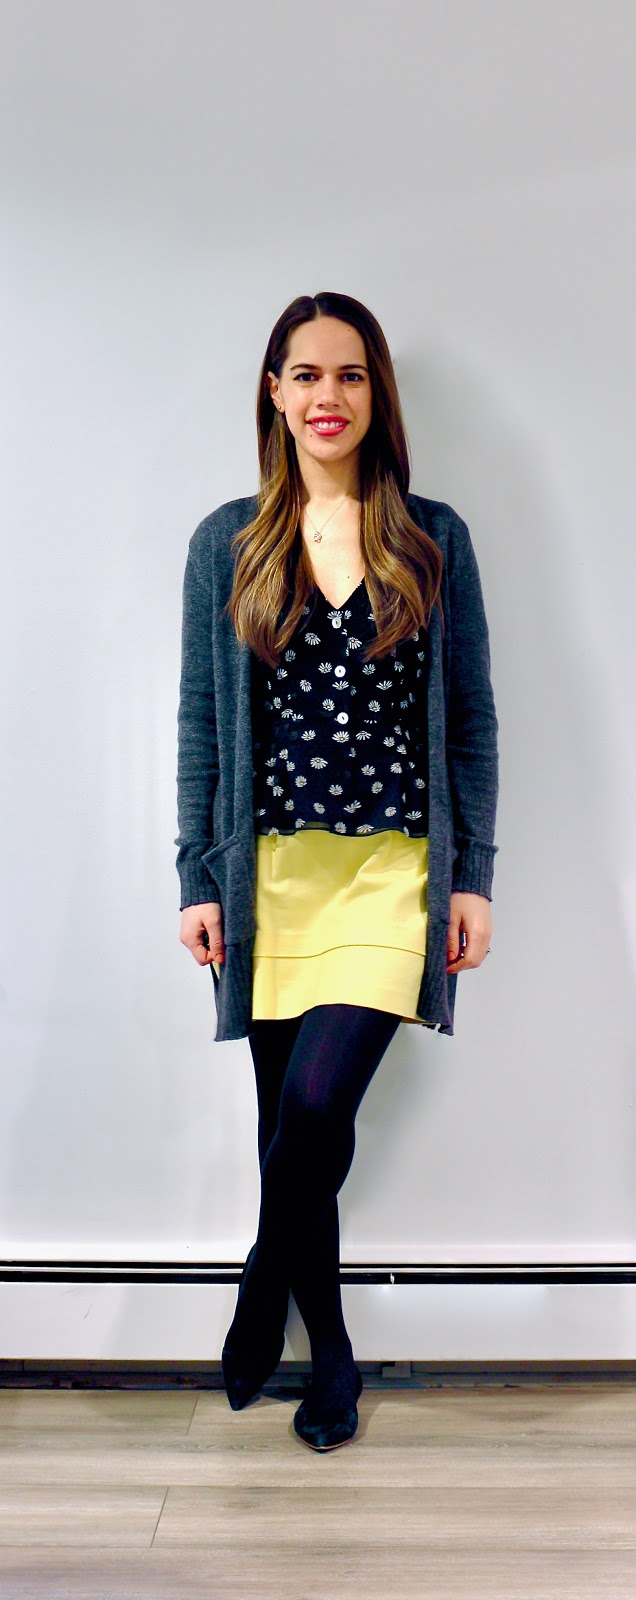 Jules in Flats - Neon Yellow Mini Skirt (Business Casual Winter Workwear on a Budget)